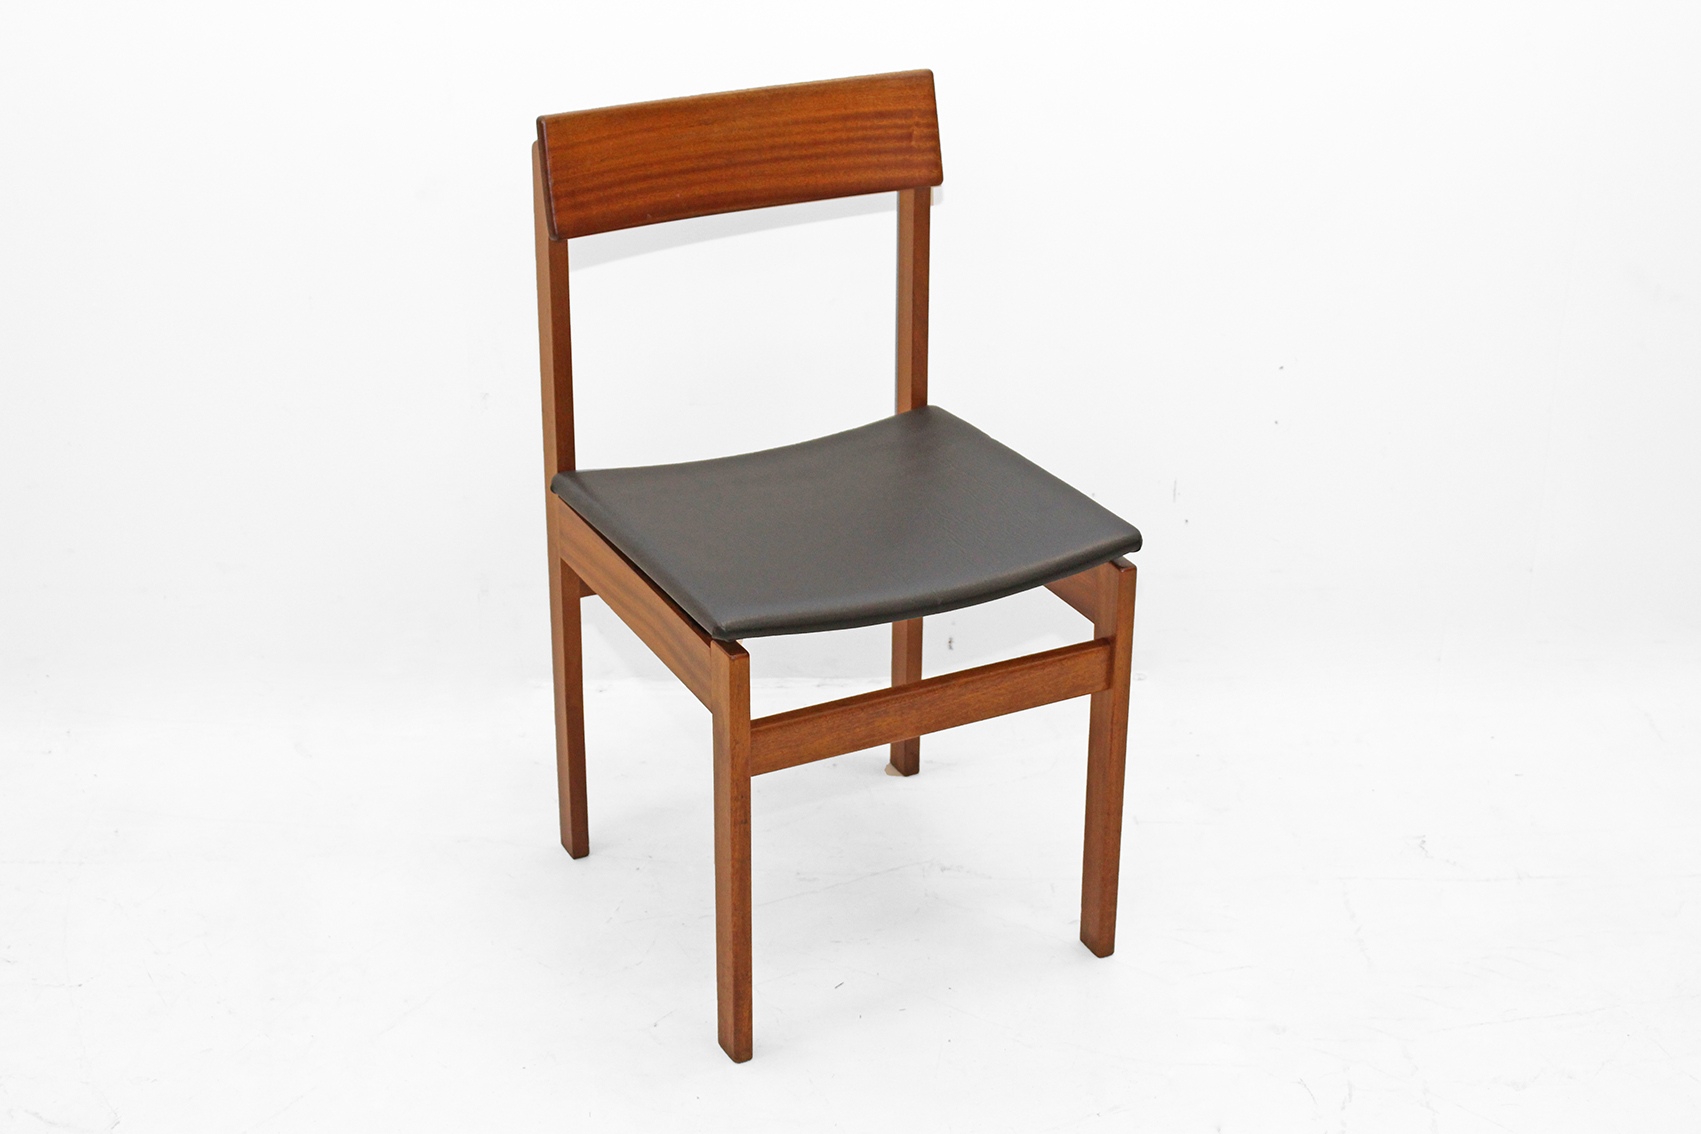 Chair by Van den Berghe Pauvers